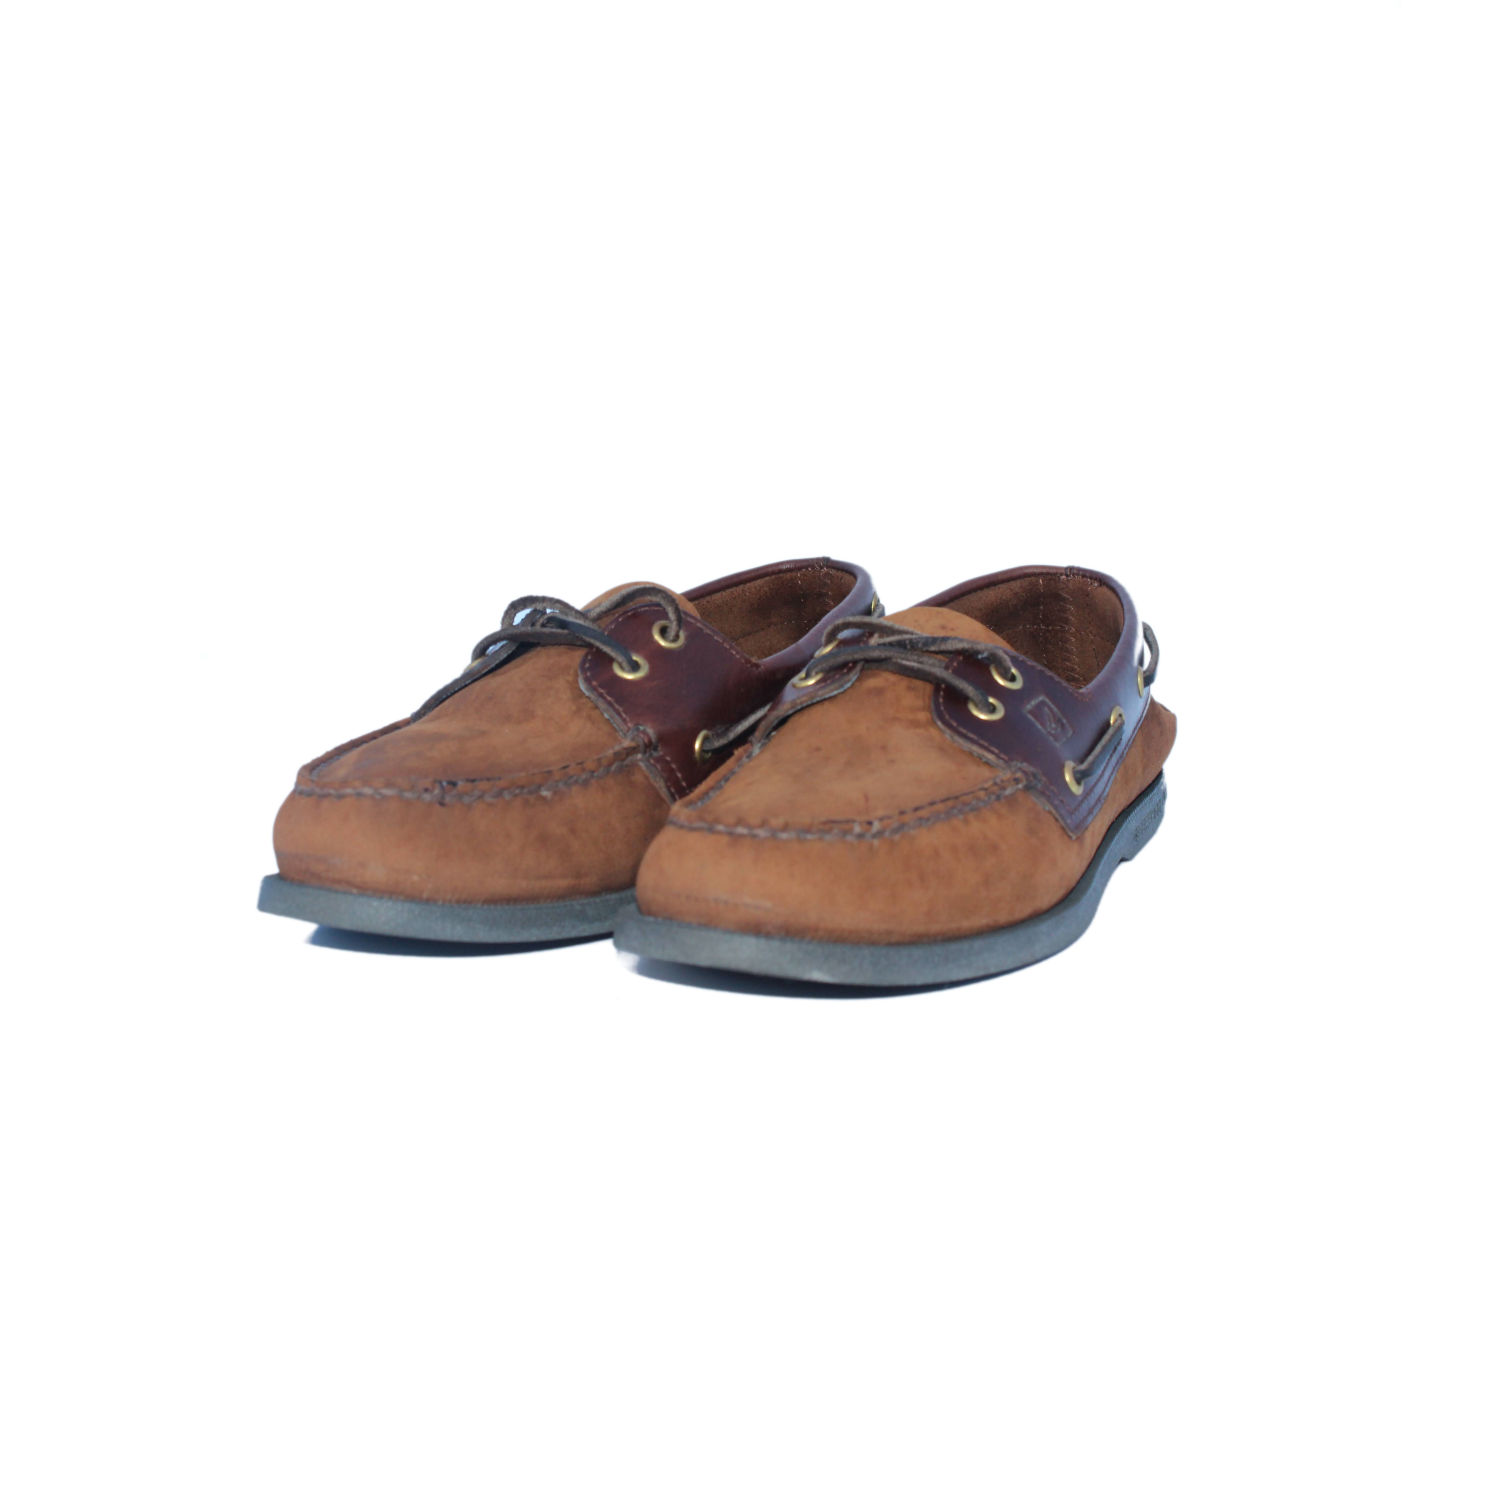 (Used) Sperry Top Sider Men's Authentic